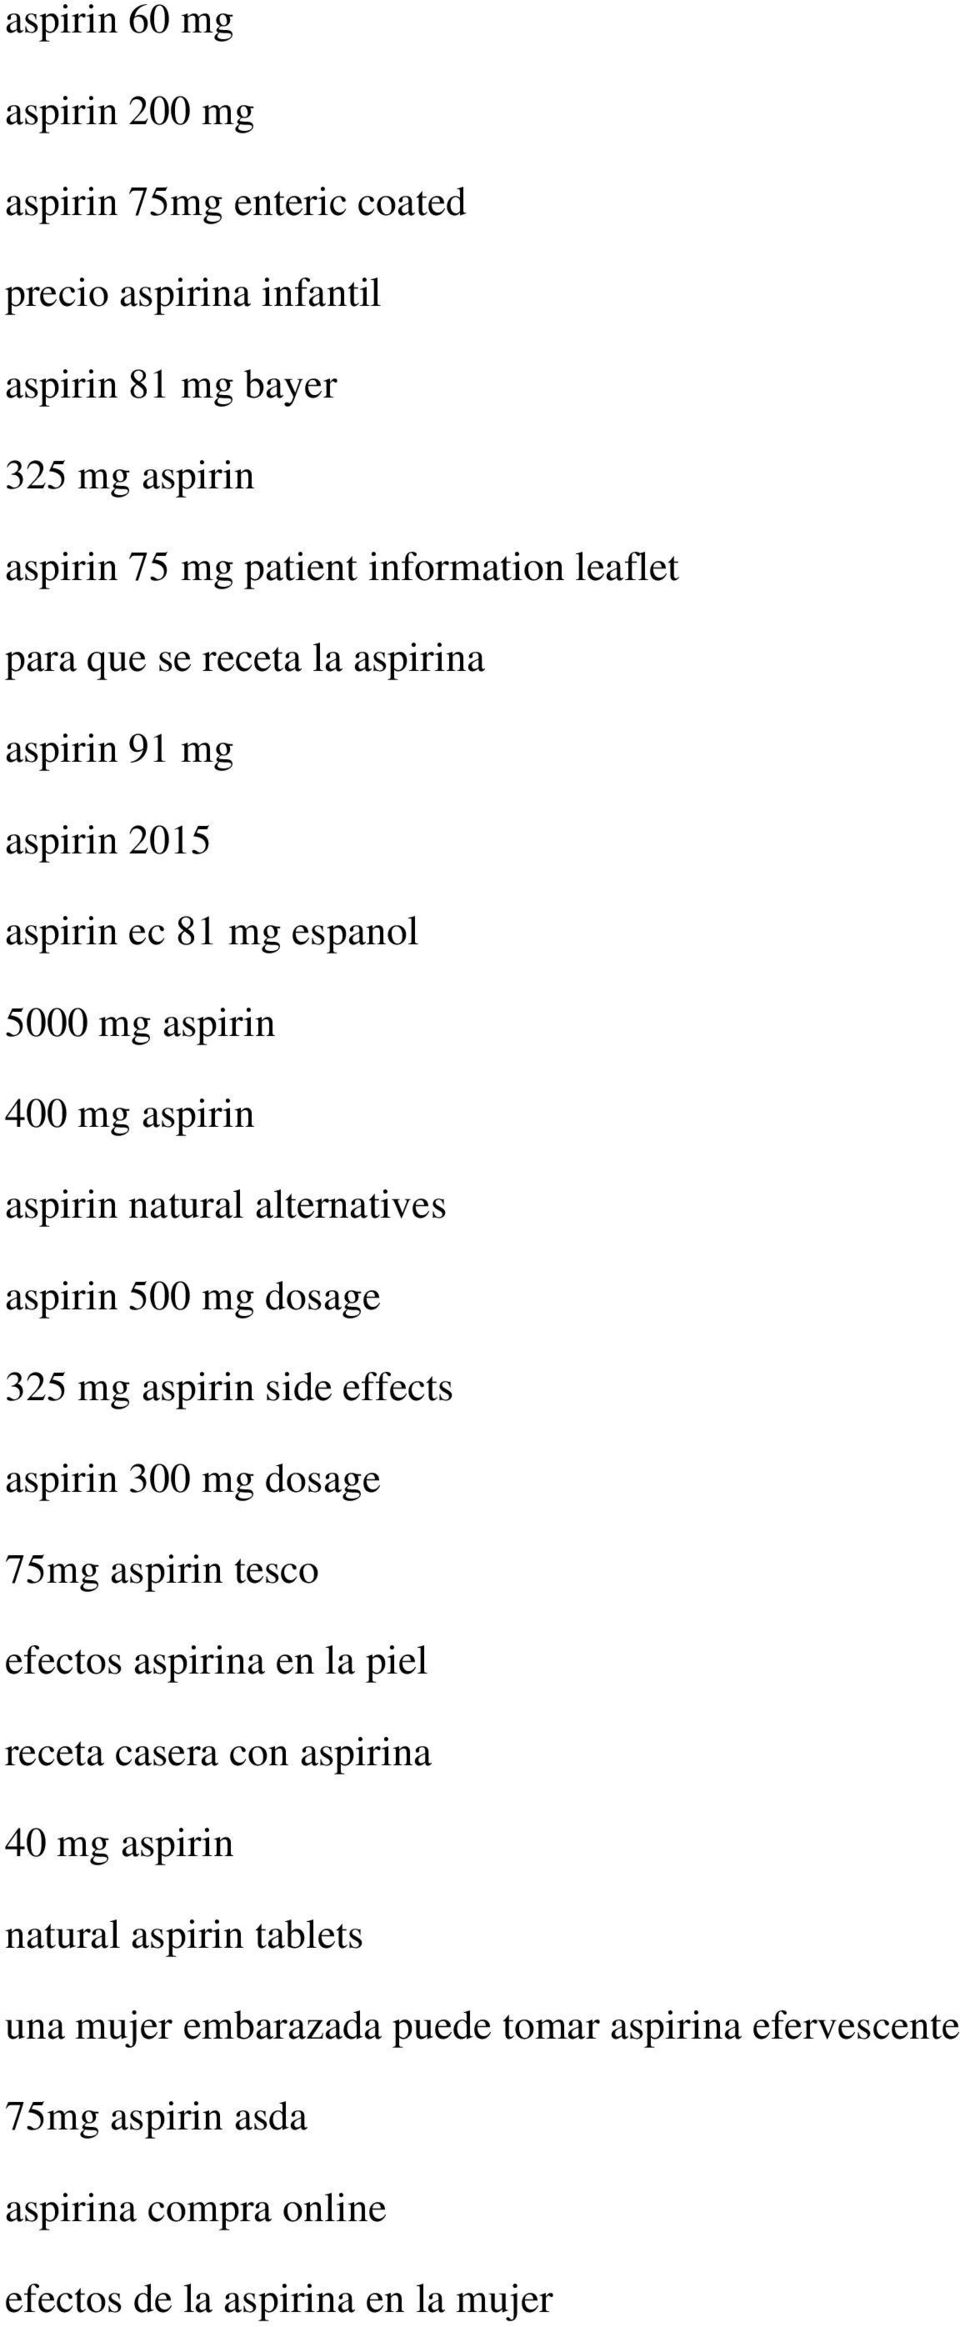 aspirin 500 mg dosage 325 mg aspirin side effects aspirin 300 mg dosage 75mg aspirin tesco efectos aspirina en la piel receta casera con aspirina 40 mg